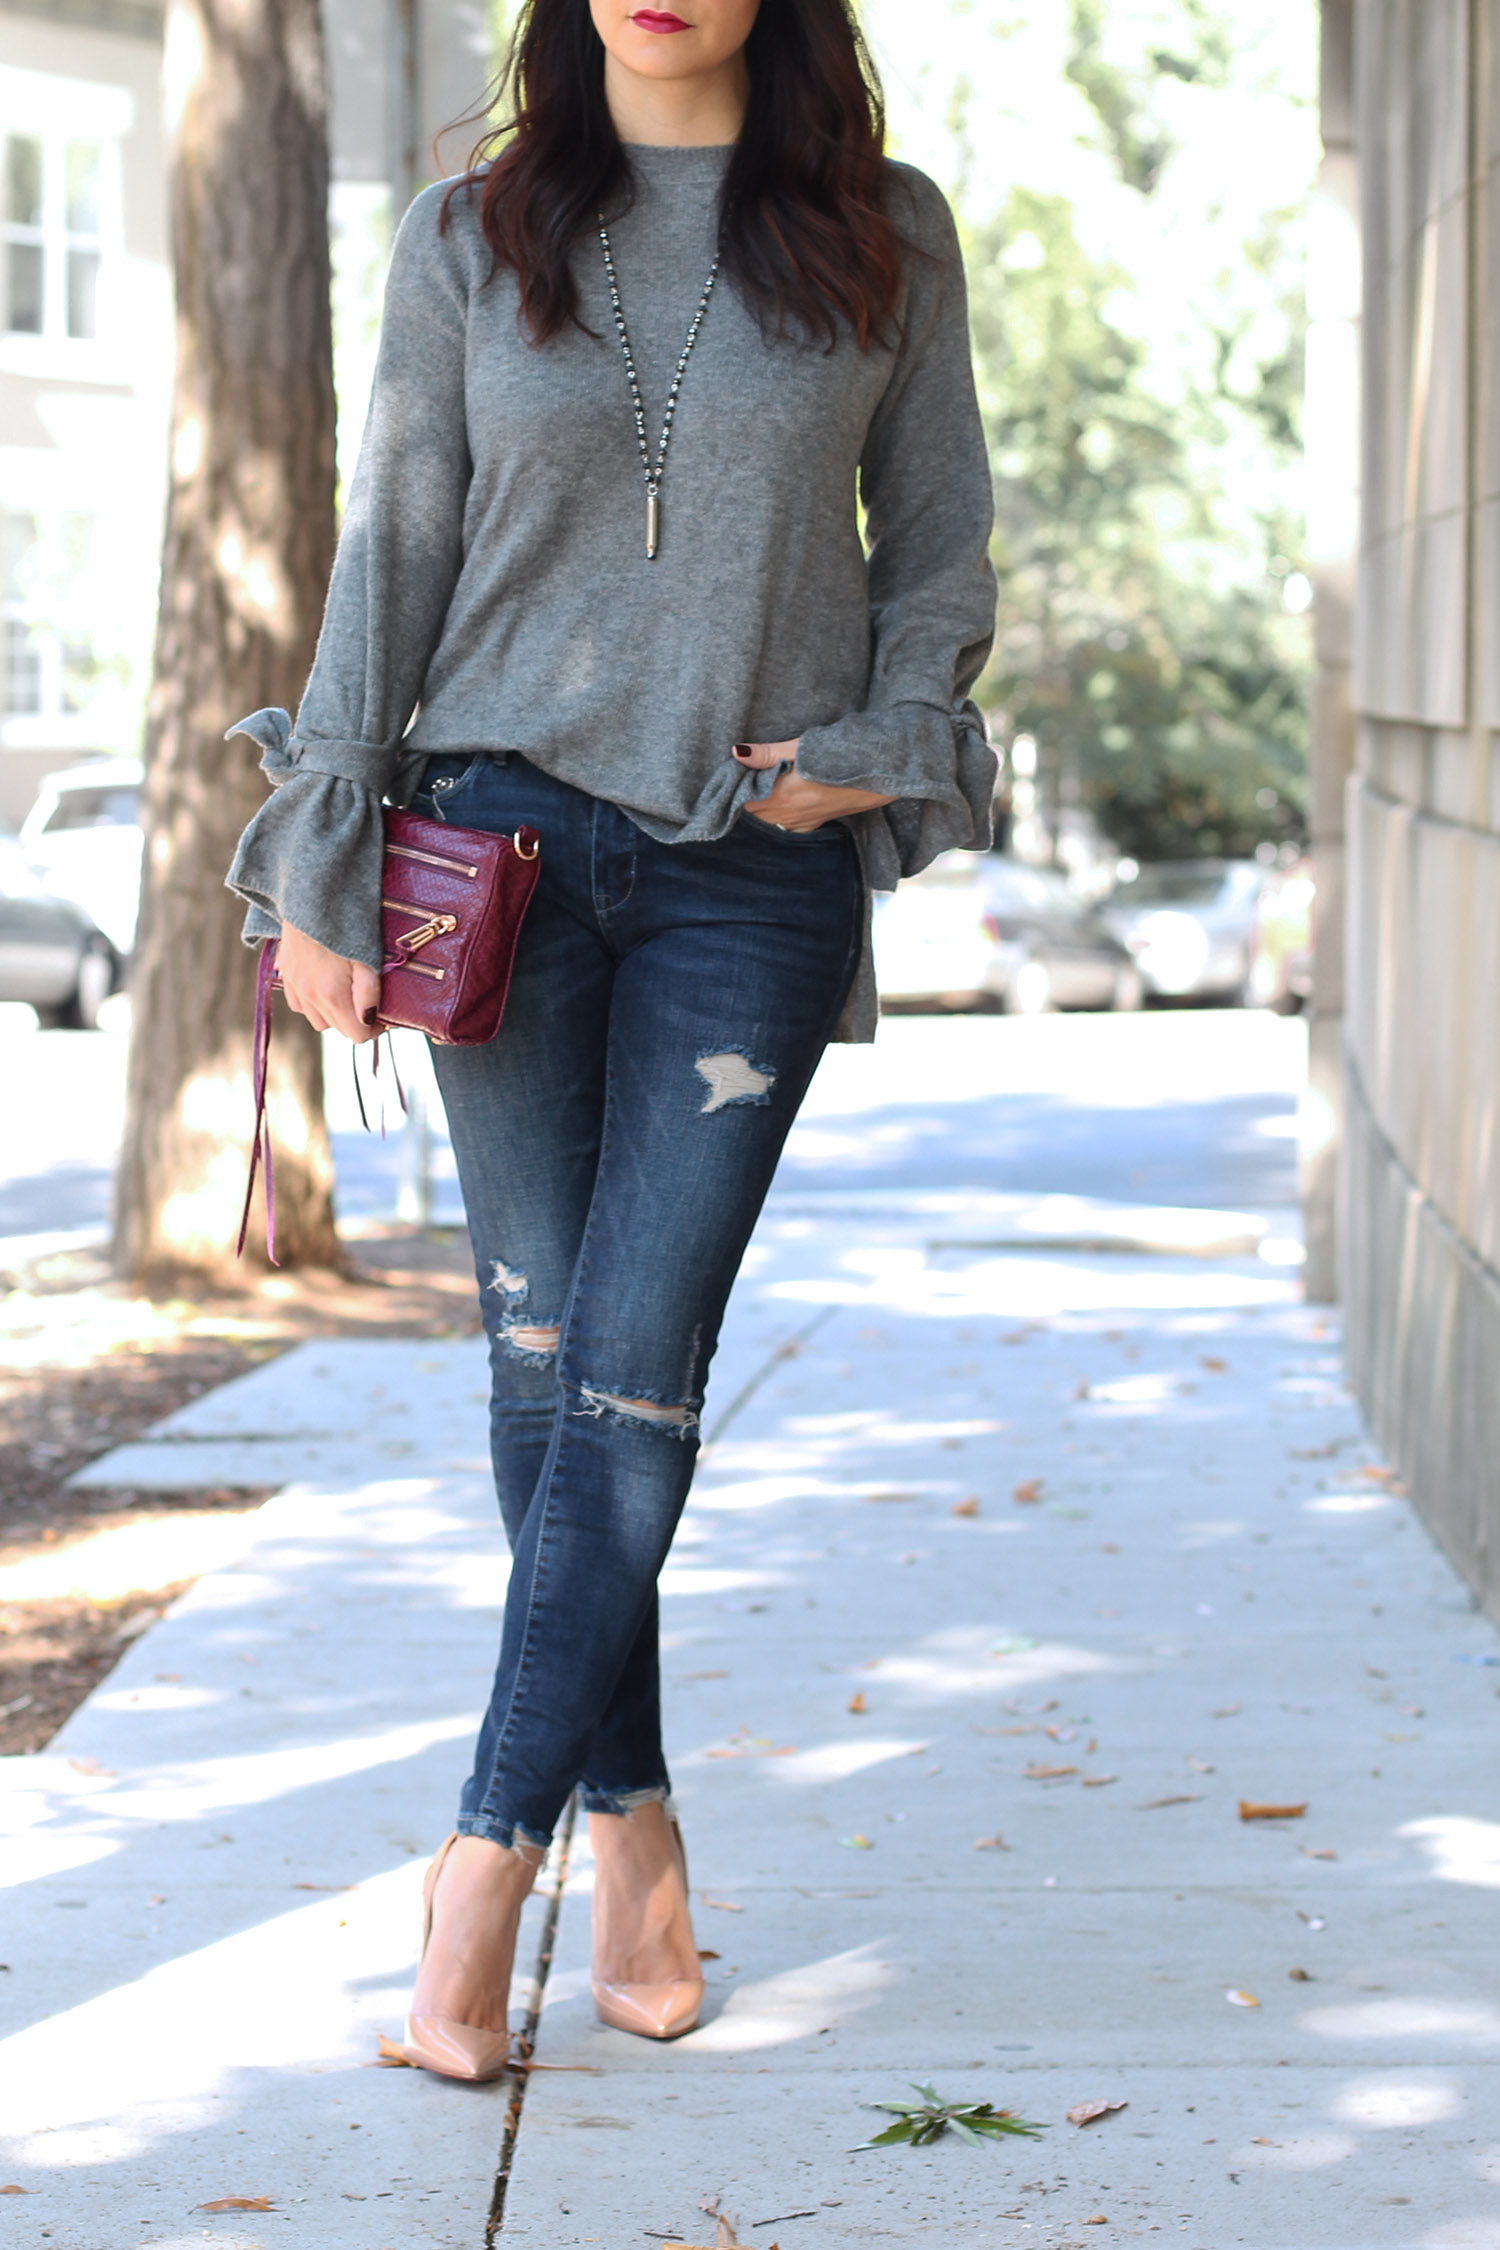 Blank NYC Distressed Jeans, Christian Louboutin So Kate, Ammo Necklace